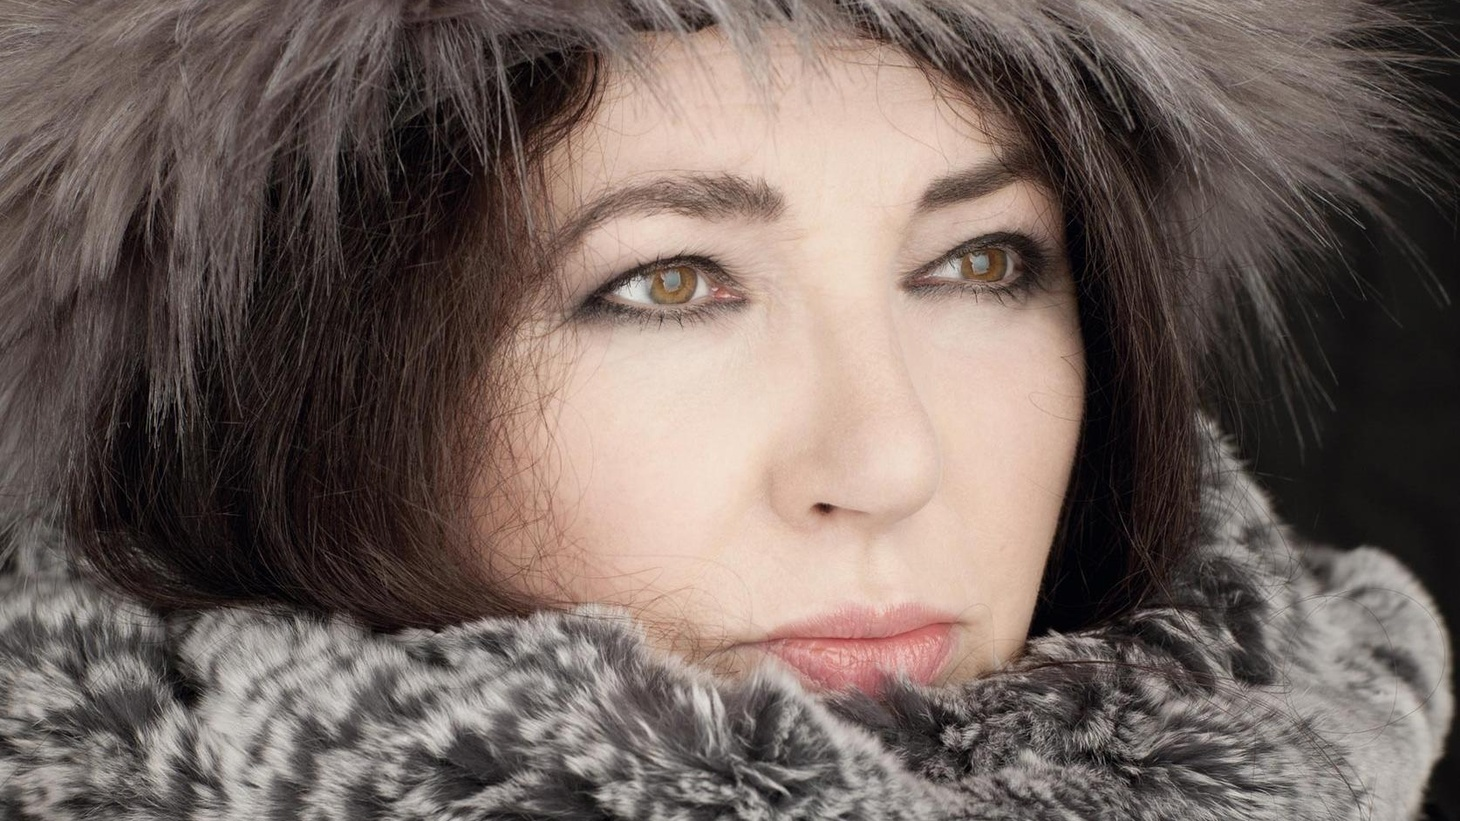 After a seven year hiatus, one of Britain's most celebrated singers is back with a stunning new release, an evocative recording set against a backdrop of falling snow.